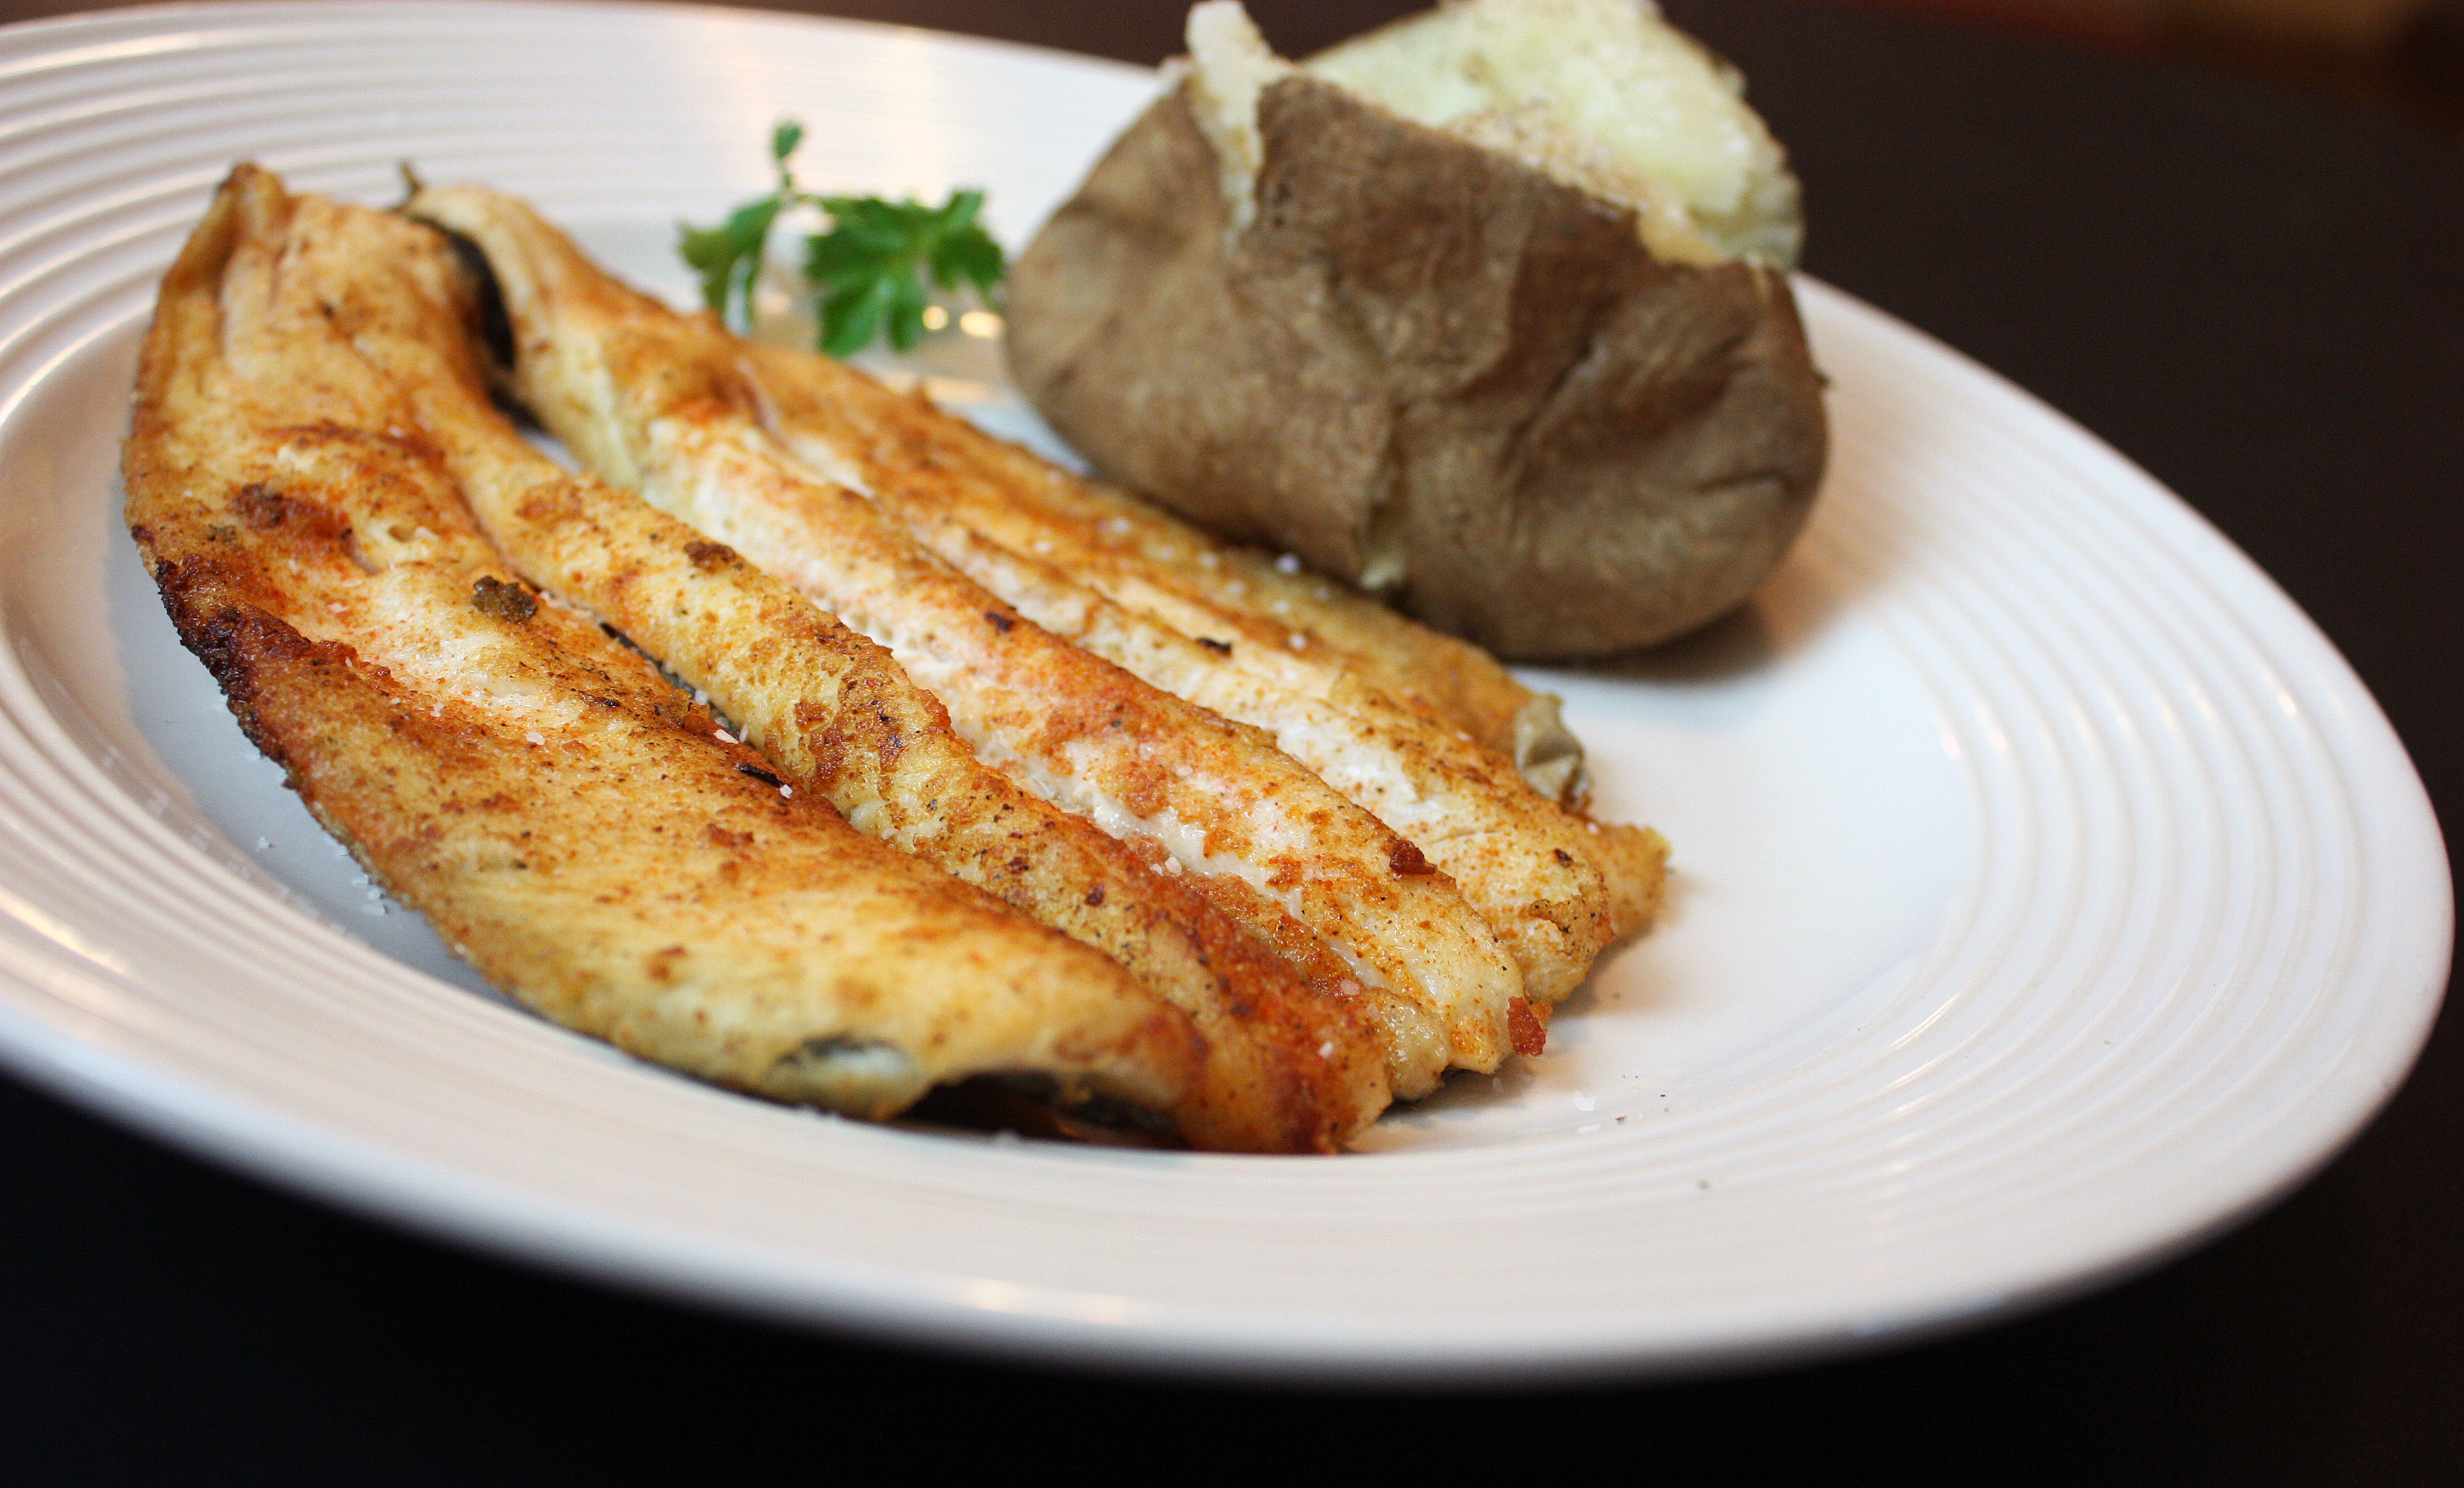 Kids in the Kitchen: Pan-Fried Trout and Baked Potatoes